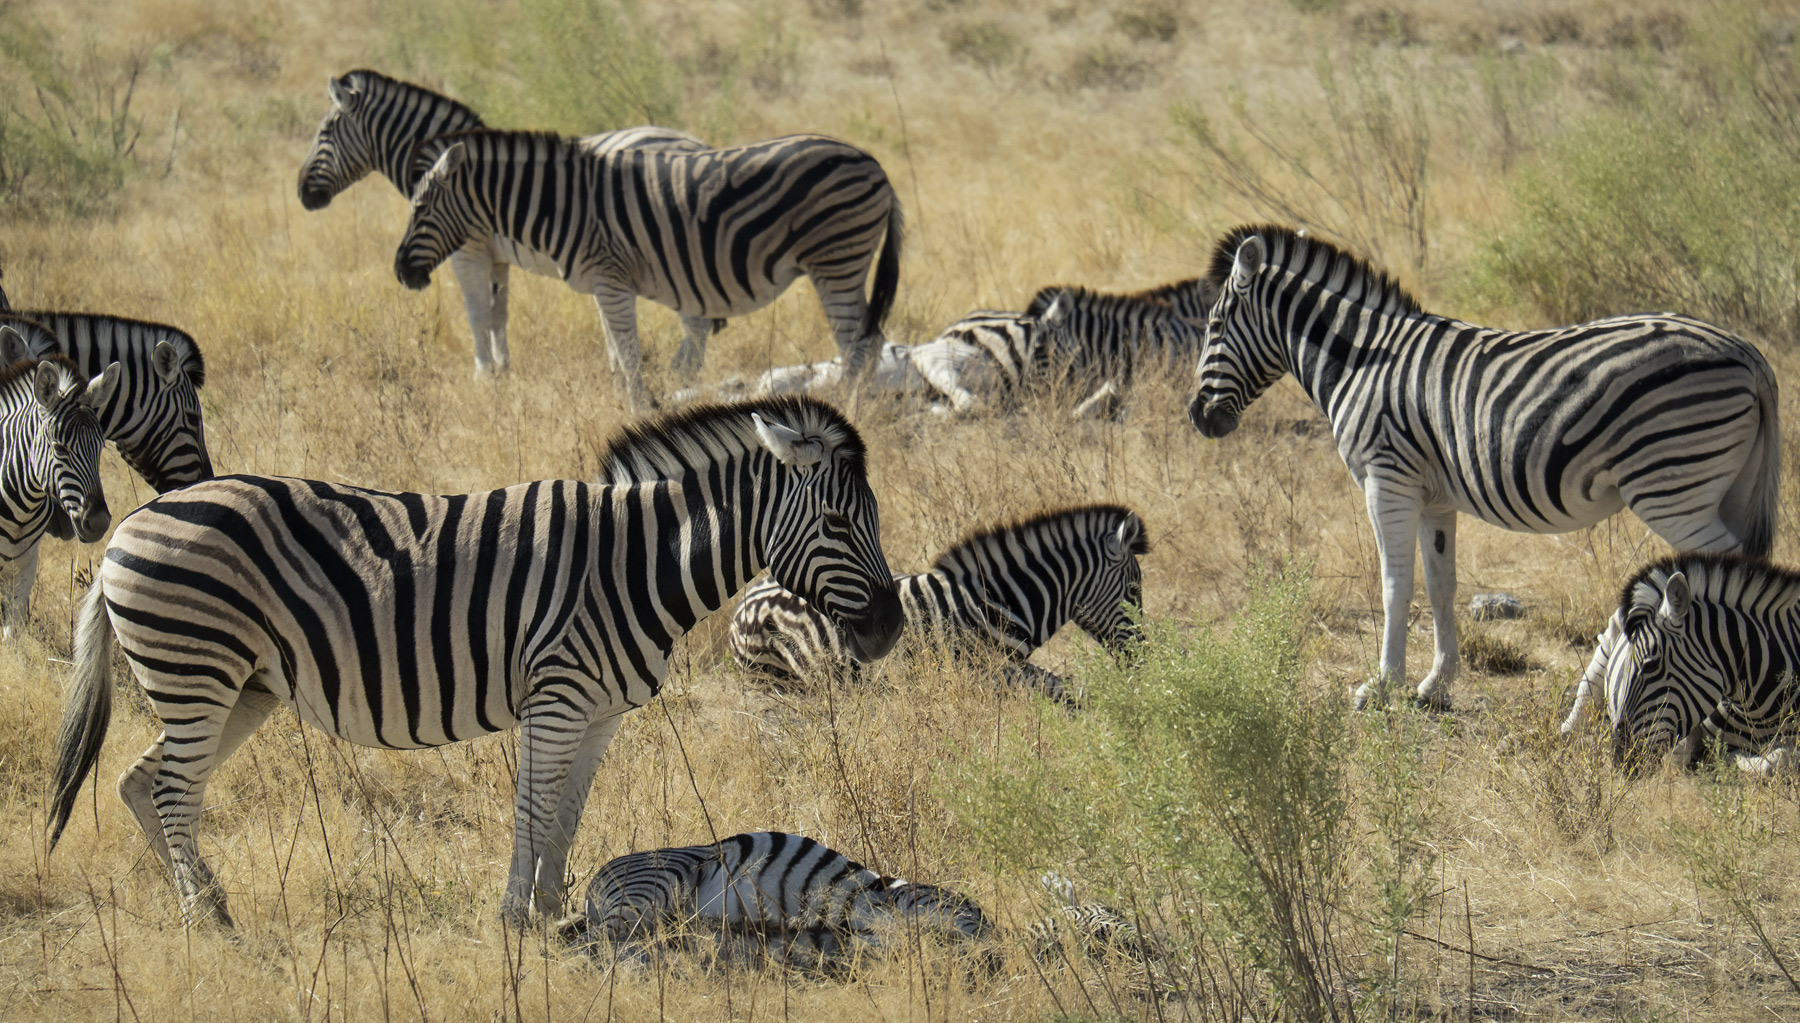 Zebra Crossing 2, Etosha, Namibia, Africa, herd, separated, neighbour, stood, basked, directions, photo